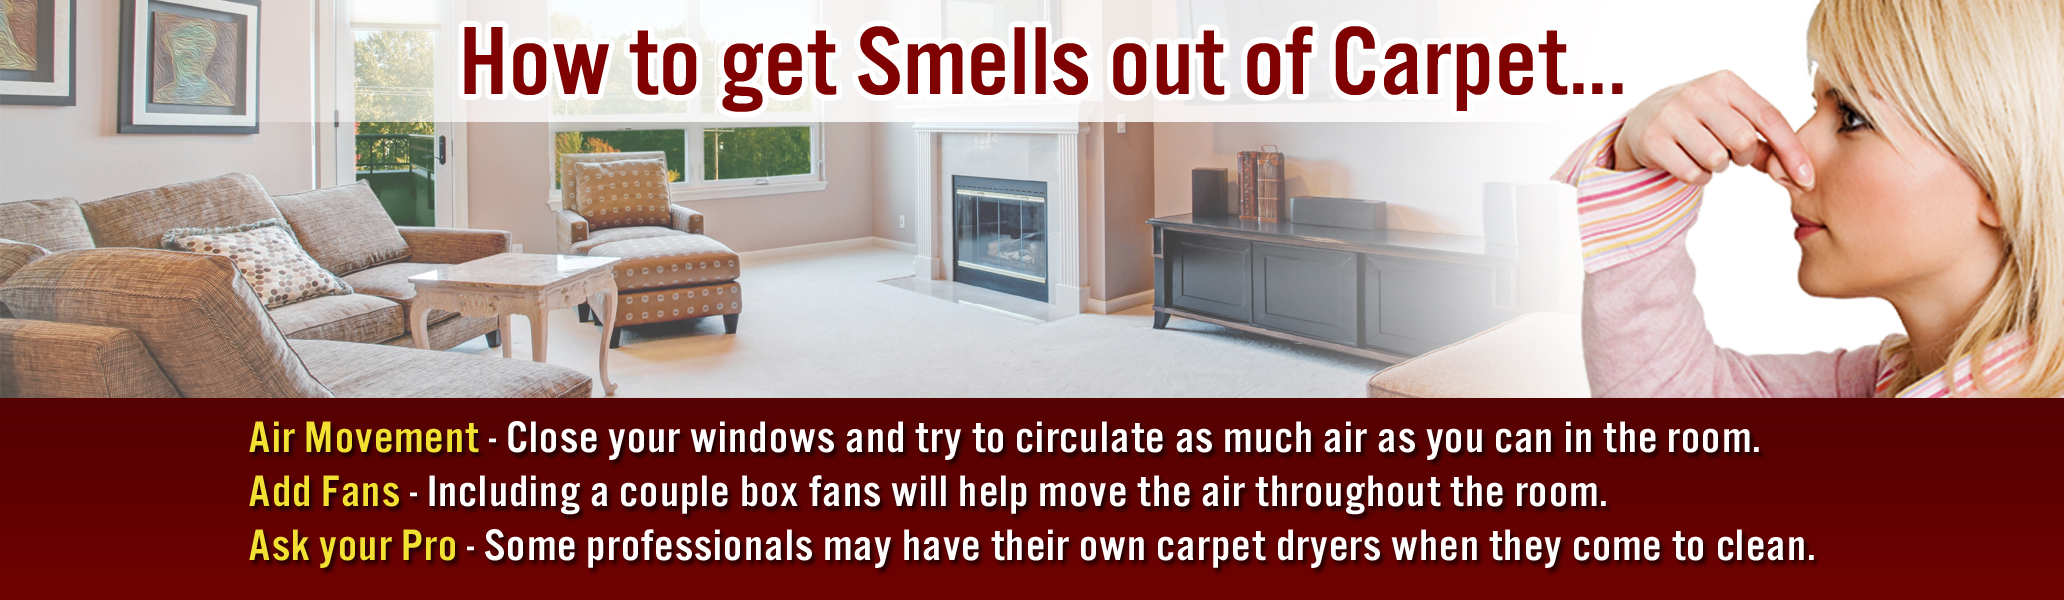 Getting rid of mildew smell in carpet home design How to get rid of shower smell